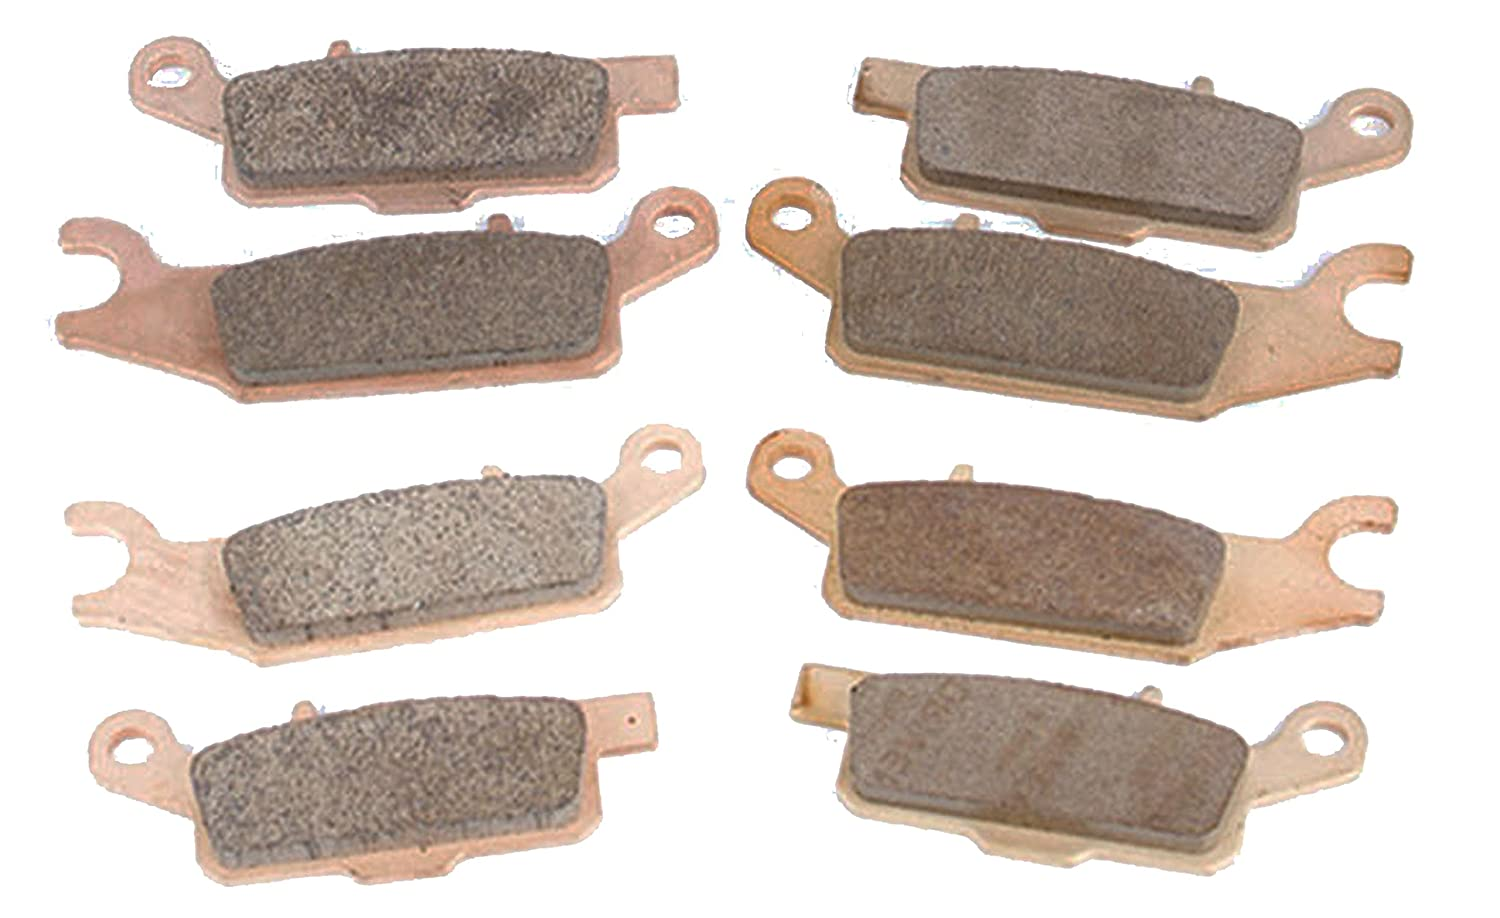 Race Driven Front and Rear Sintered Metal Severe Duty Brake Pads for Yamaha Grizzly YFM550 550 YFM700 700